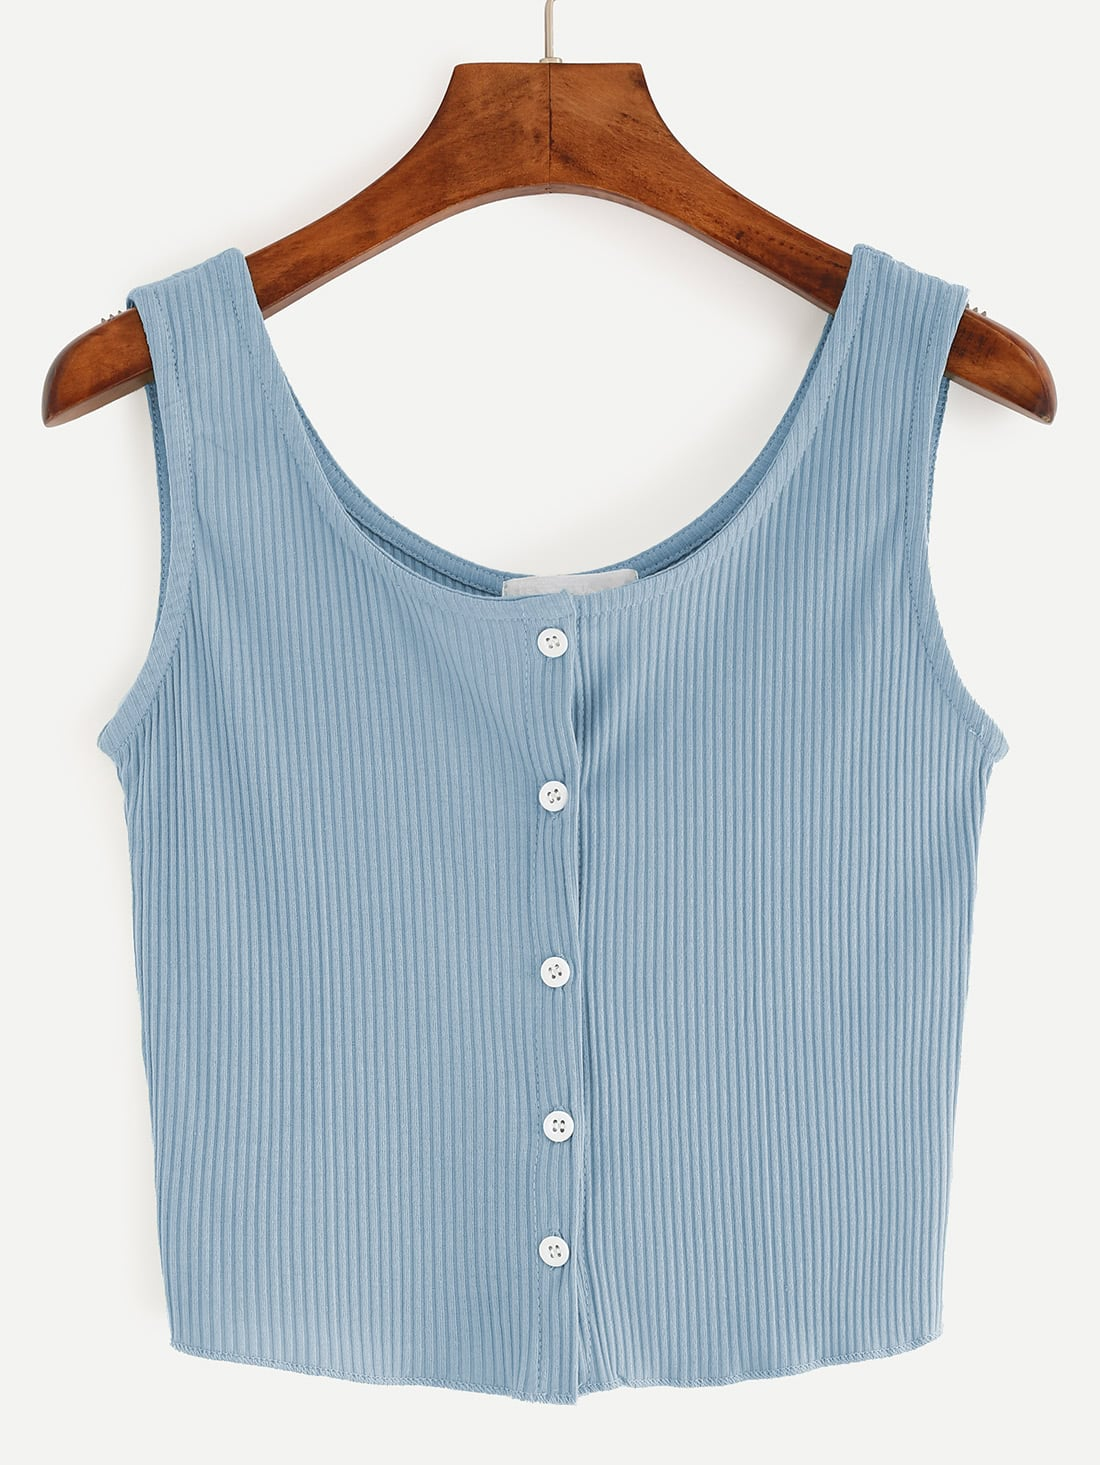 Blue Button Front Ribbed Tank Top vest160705028